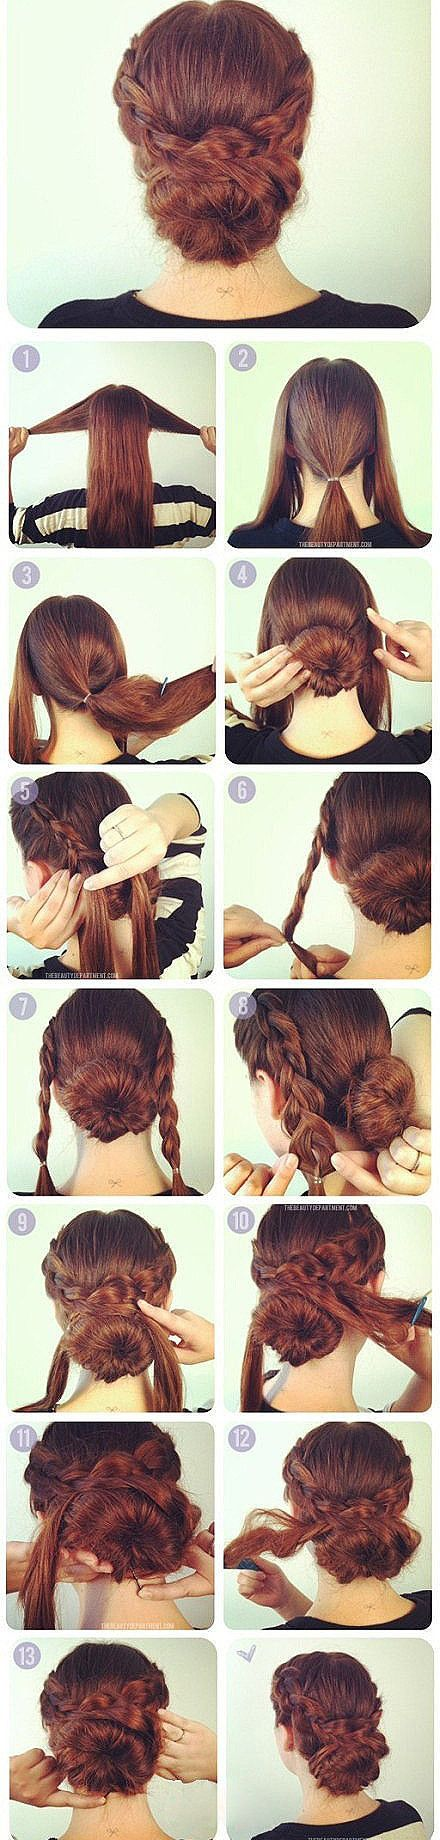 Braids with a bun updo :)